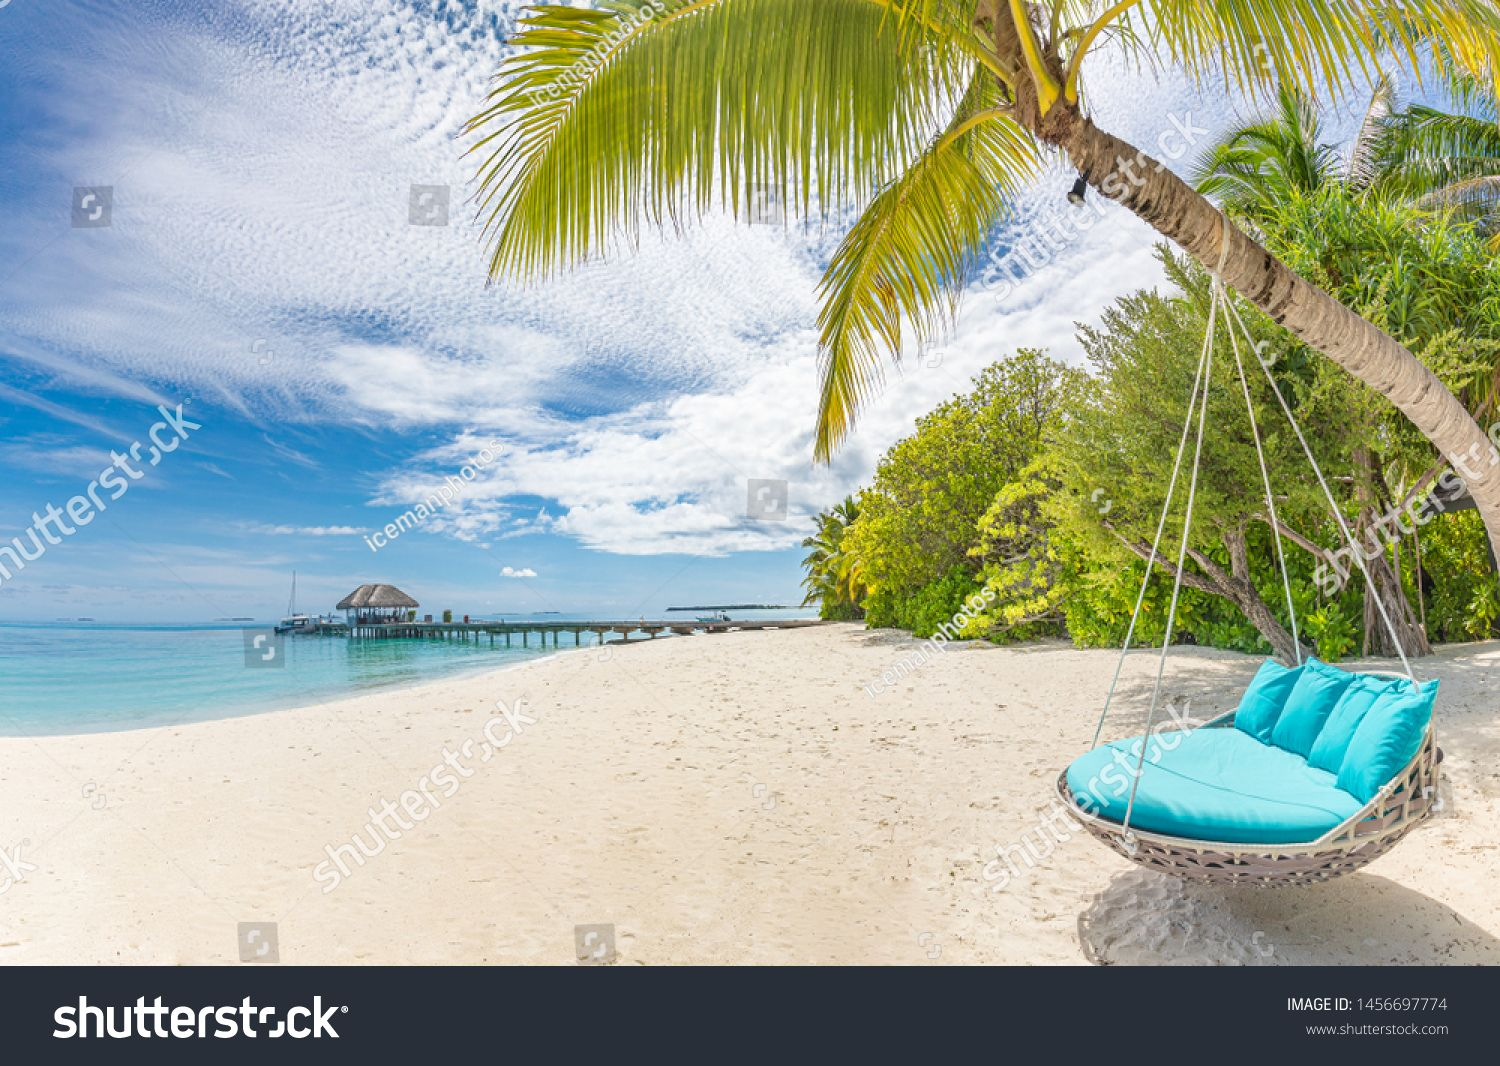 Tropical Beach Background As Summer Landscape With Beach Swing Or Hammock And White Sand And Calm Sea For Beac In 2020 Beach Background Summer Landscape Tropical Beach